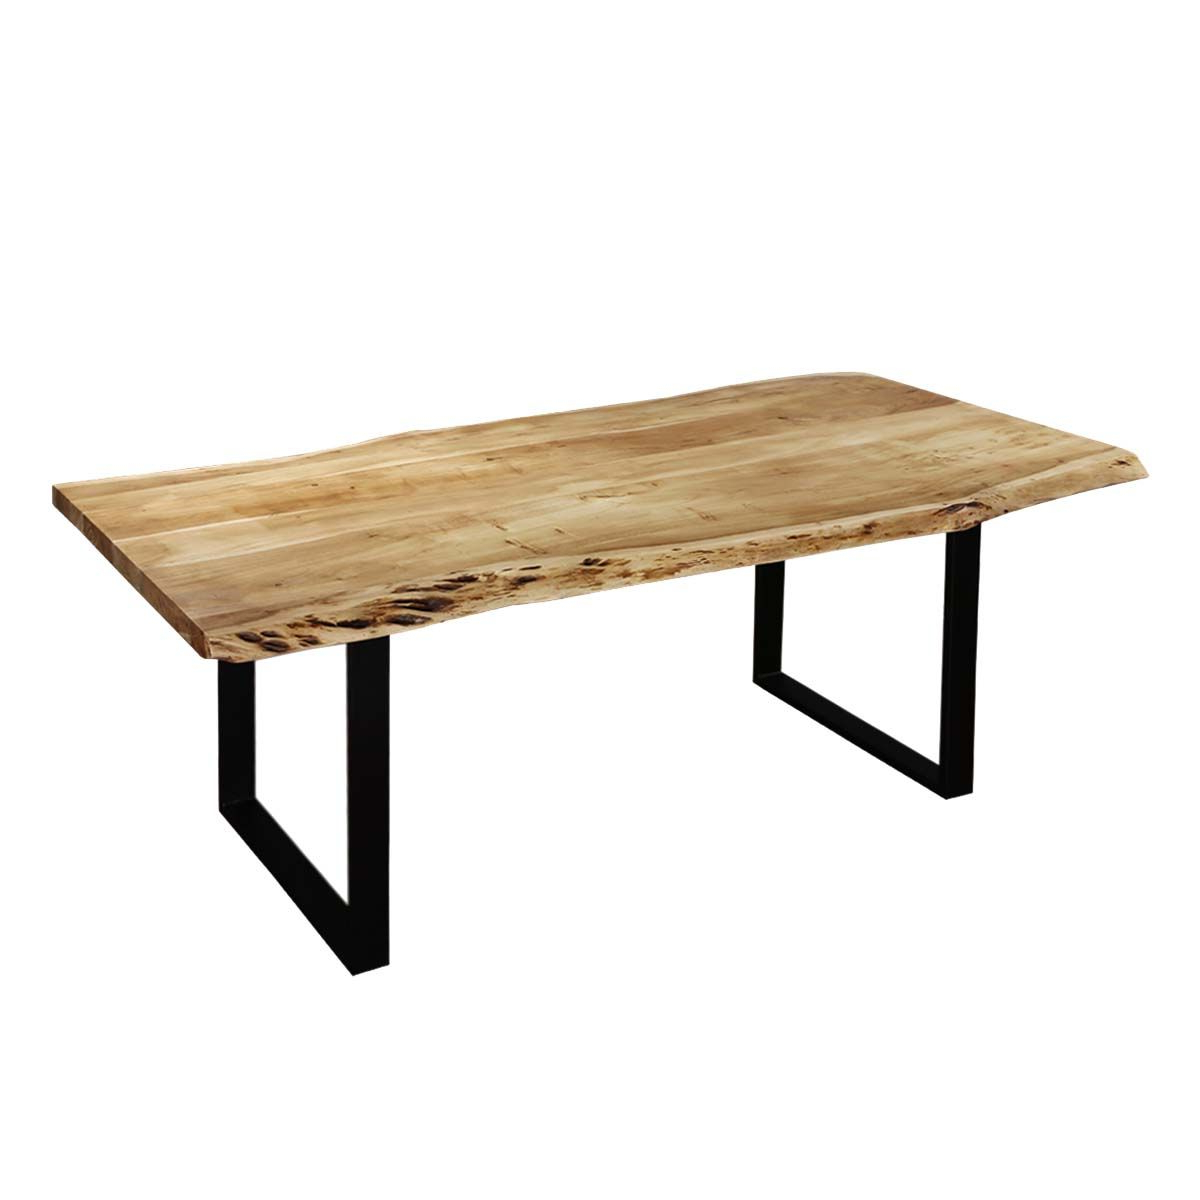 2018 Contemporary Mango Wood & Iron Live Edge Dining Table Regarding Acacia Wood Top Dining Tables With Iron Legs On Raw Metal (View 4 of 30)